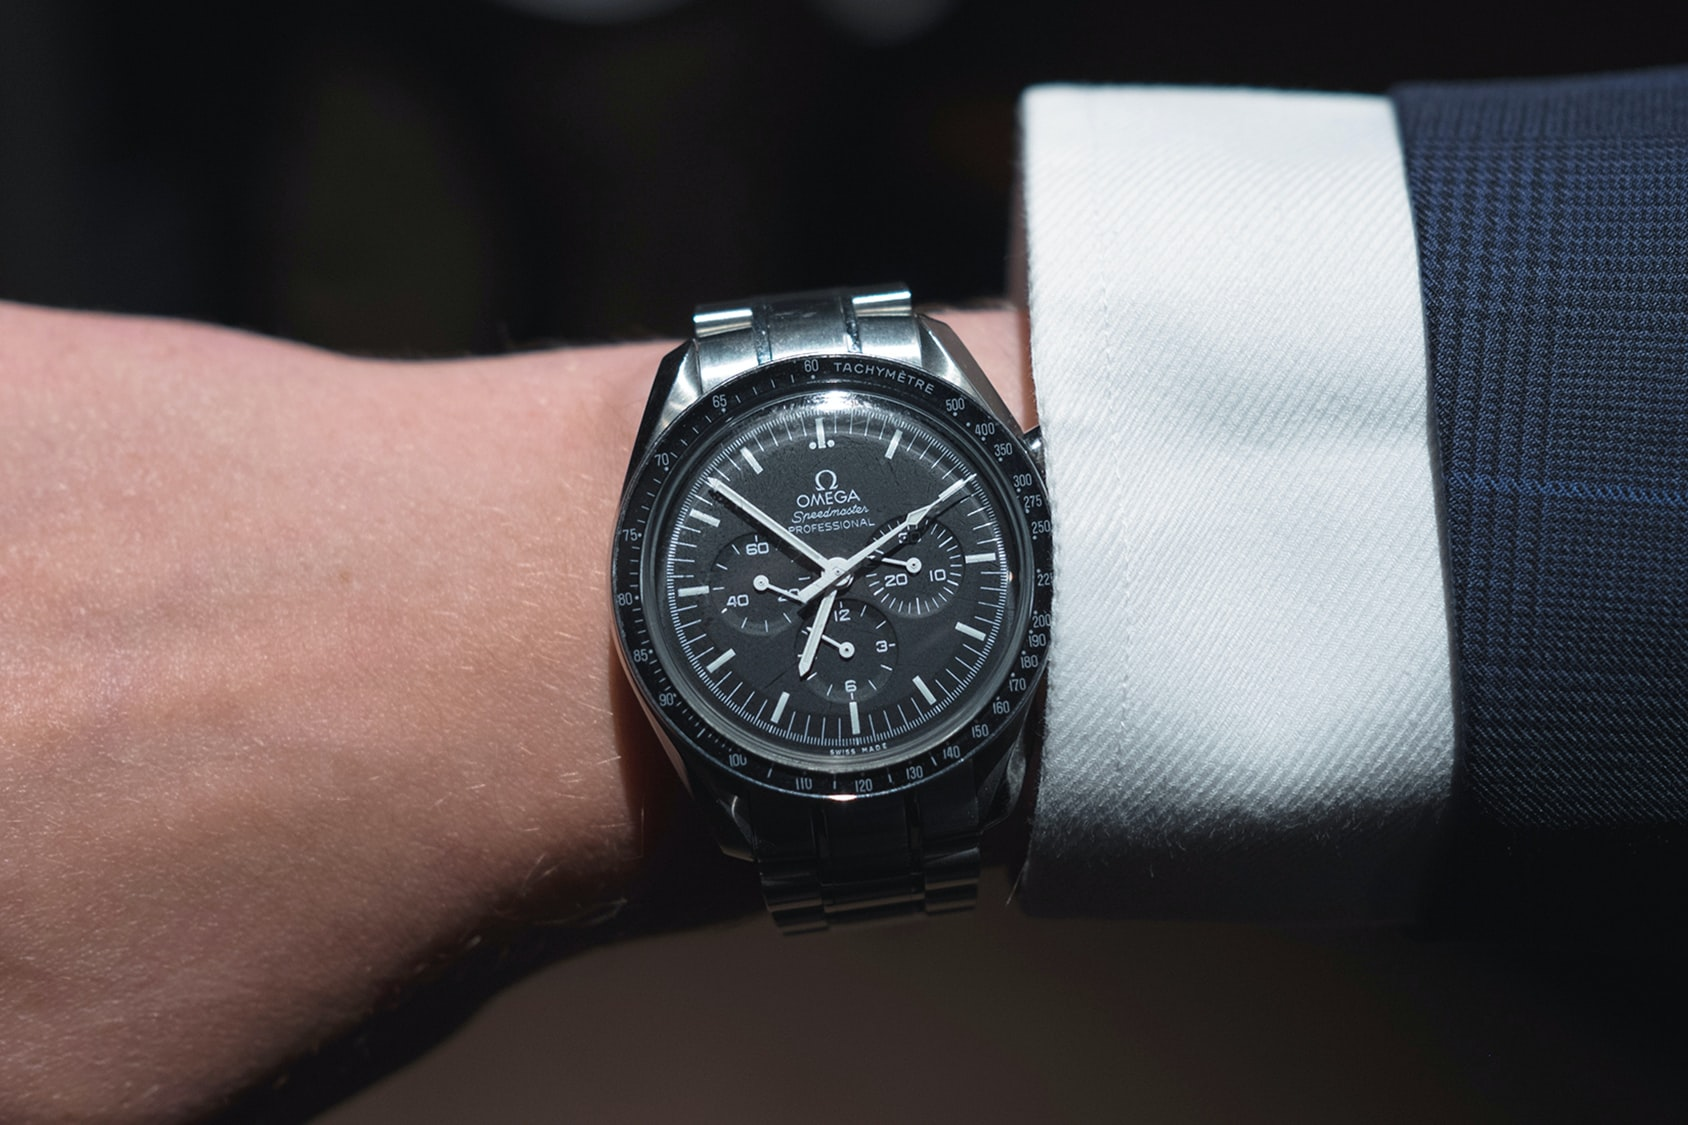 Photo Report: Watch Spotting At The HODINKEE Meet-Up In London (Plus Our Holiday 2016 Pop-Up At Harrods) Photo Report: Watch Spotting At The HODINKEE Meet-Up In London (Plus Our Holiday 2016 Pop-Up At Harrods) dfafadsfa